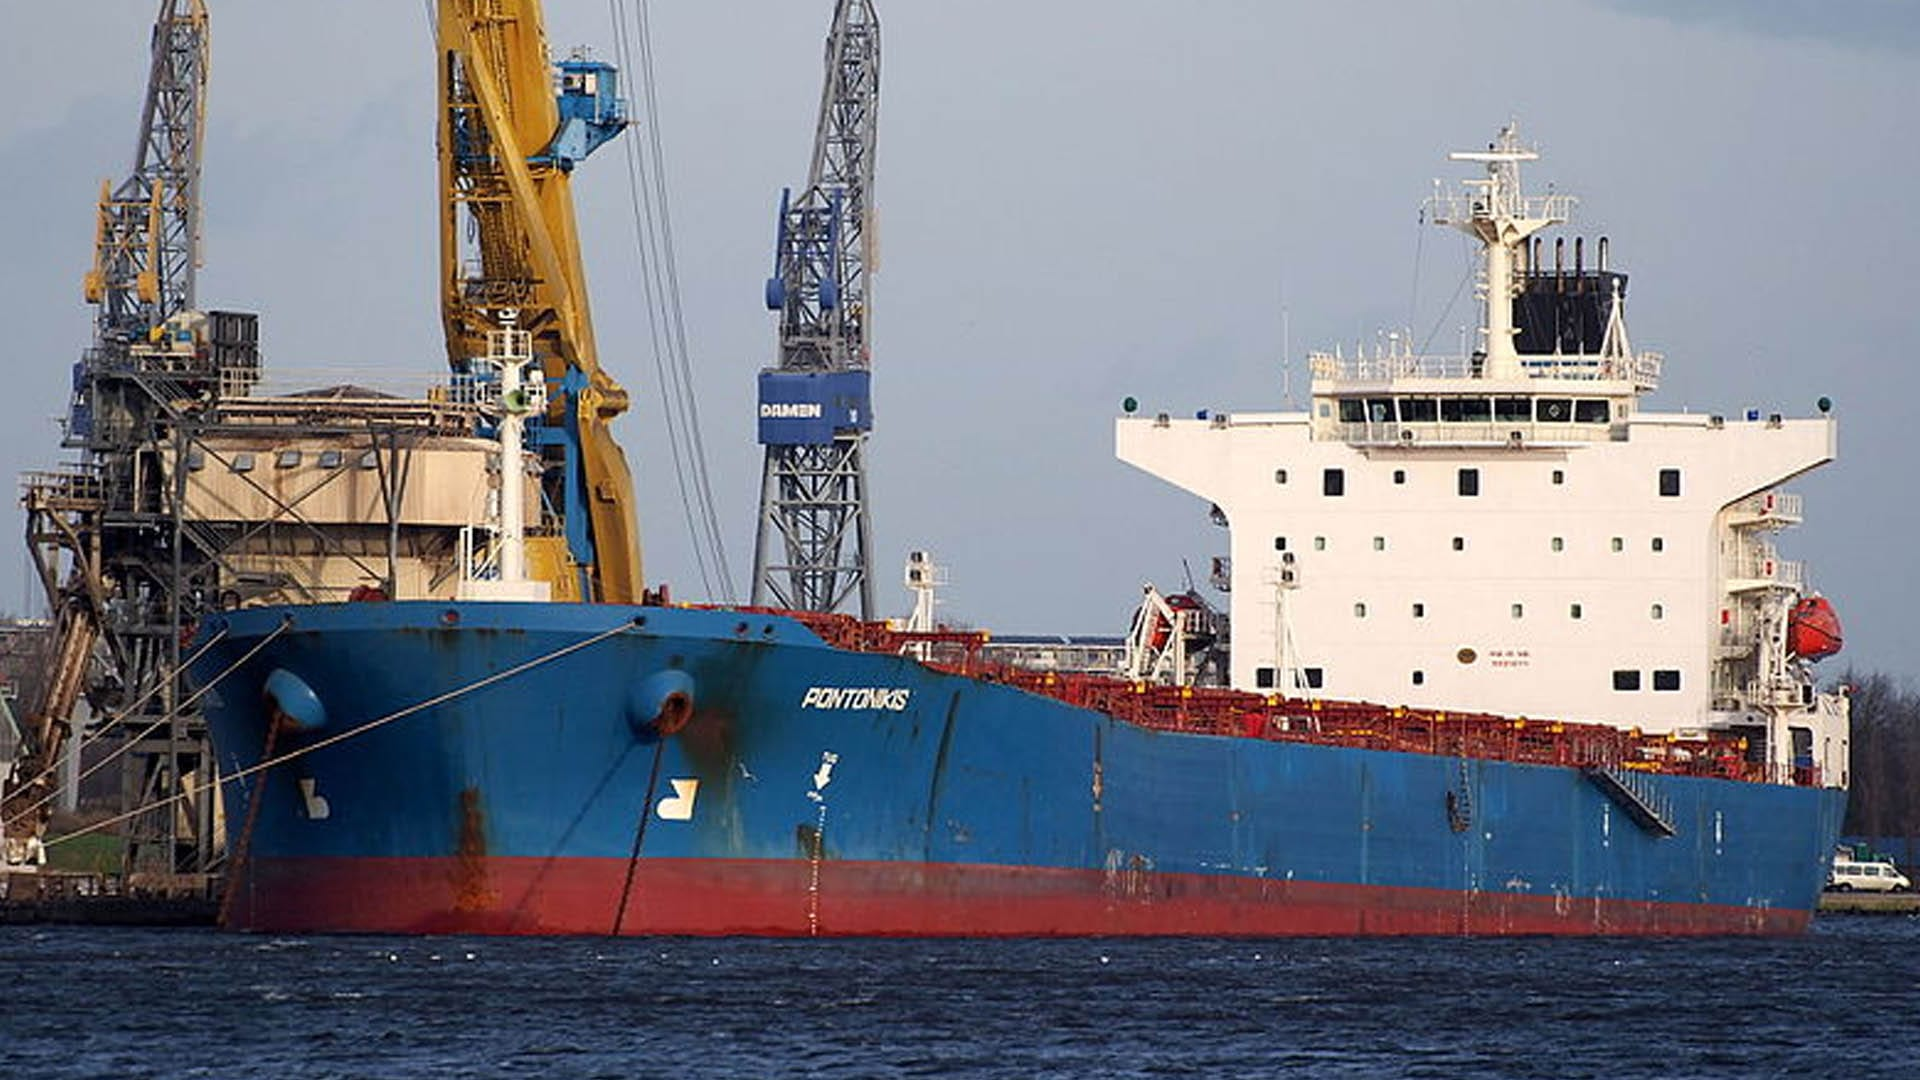 Bulker Detained in Australia Over Unpaid Crew Wages